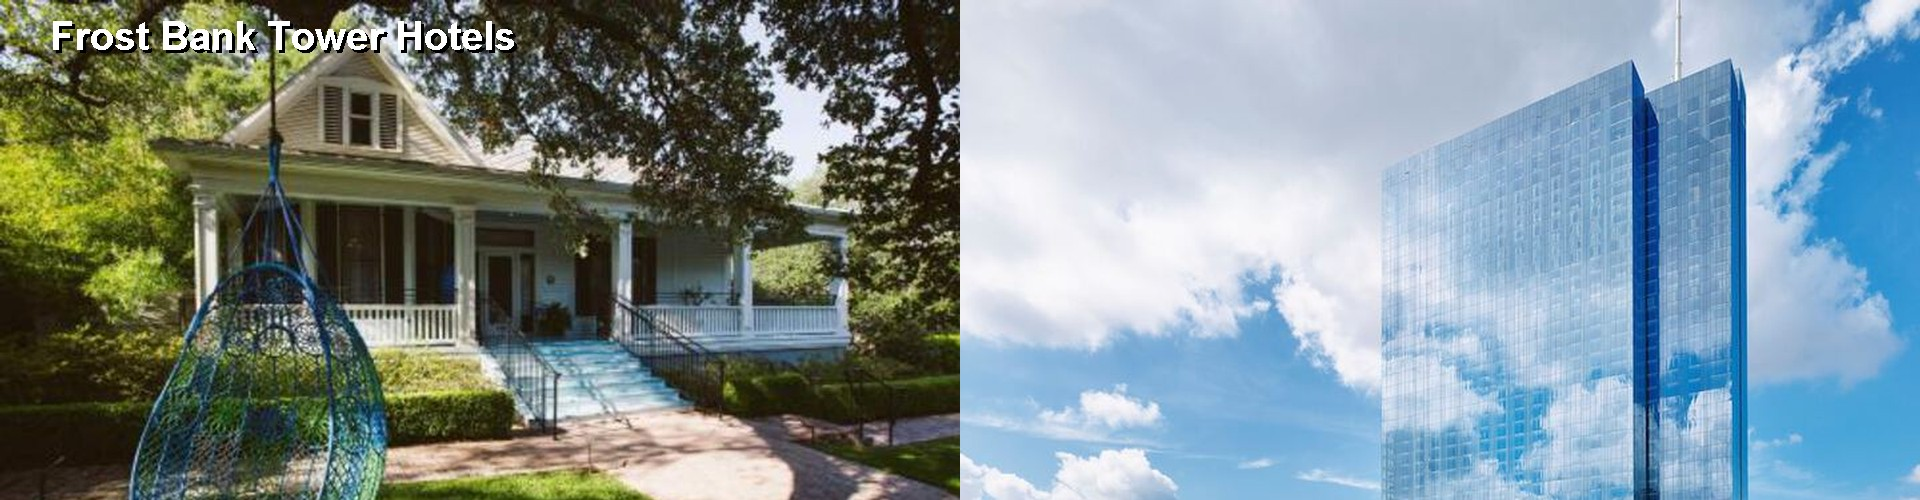 5 Best Hotels near Frost Bank Tower